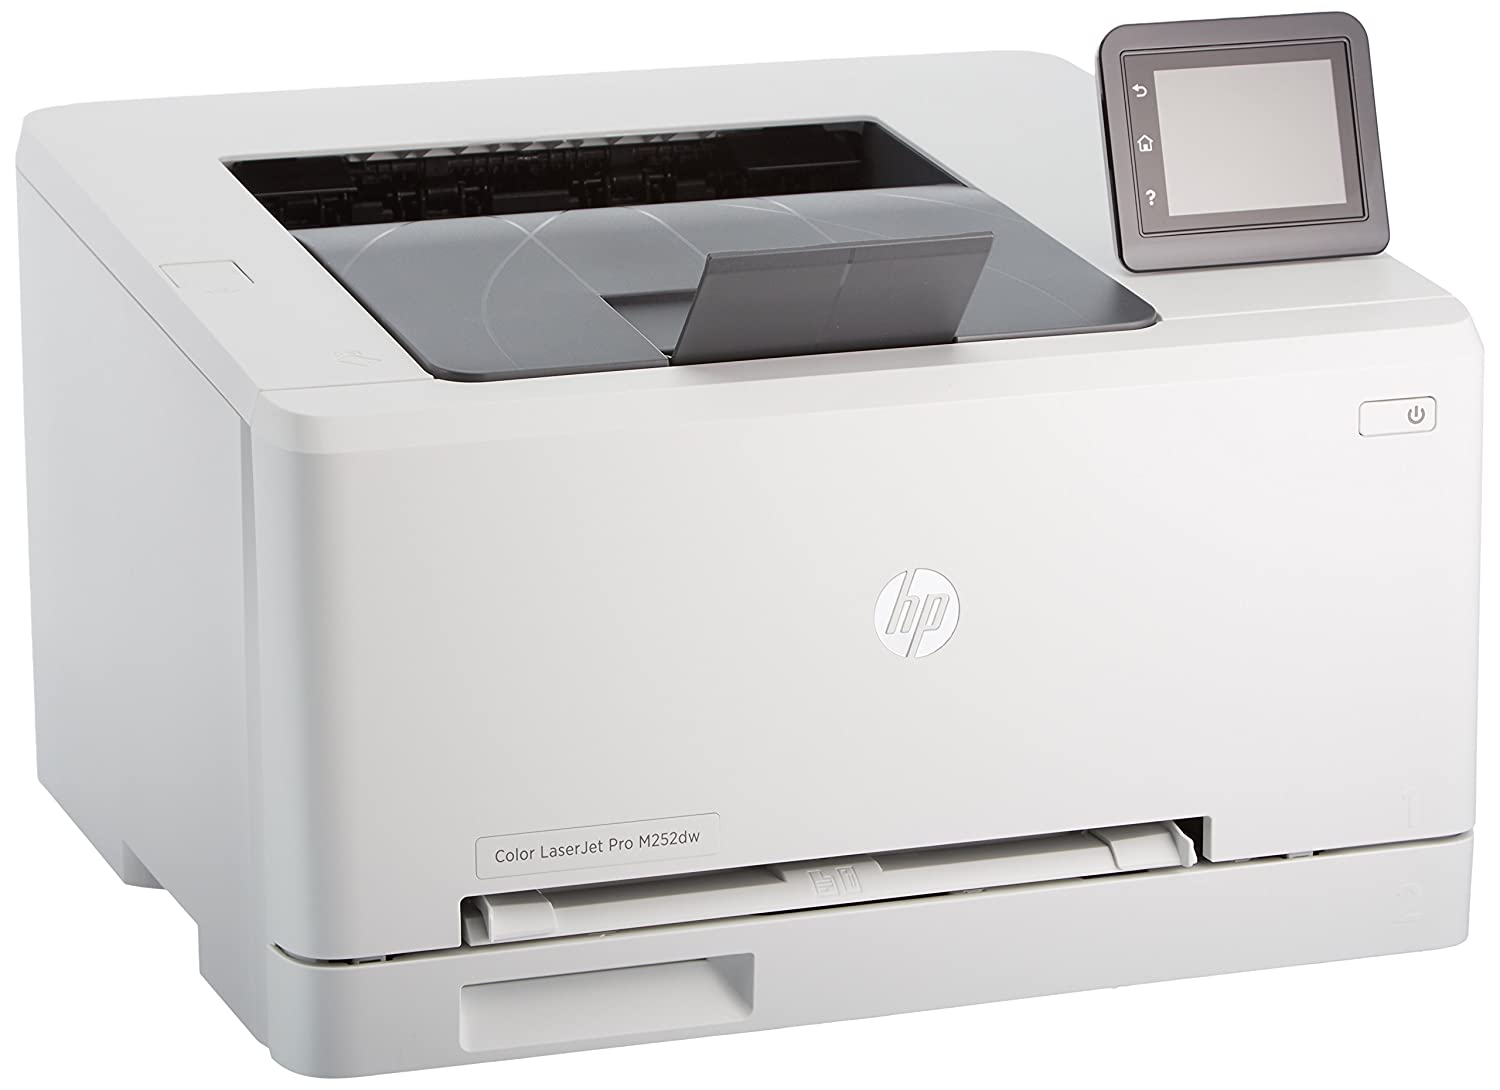 HP Laserjet Pro M252dw Wireless Colour Laser Printer B4A22A Amazonca Electronics